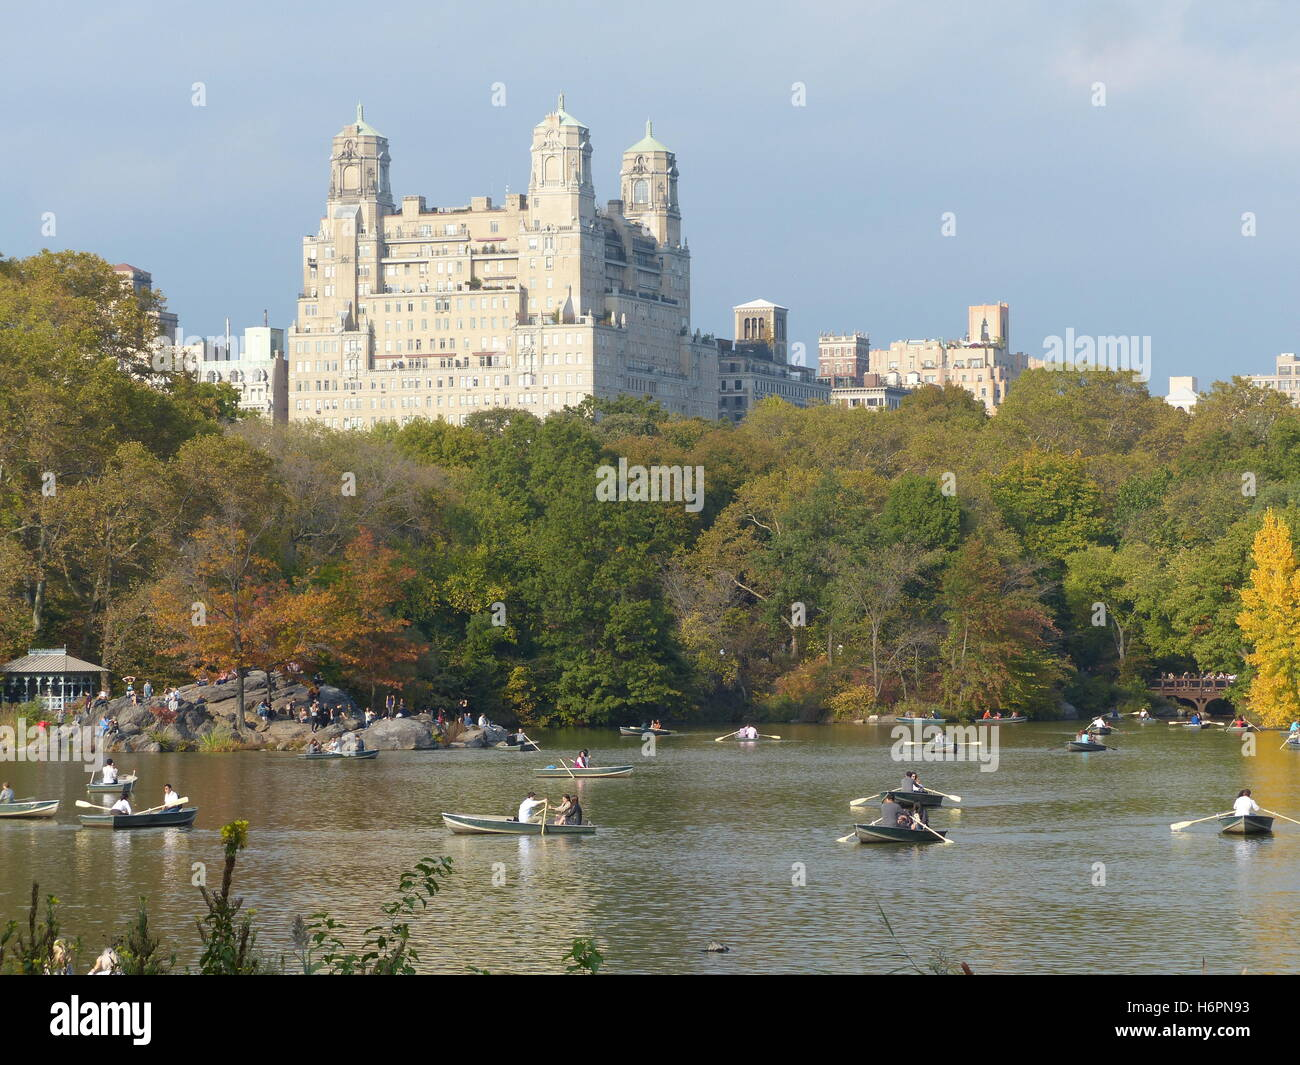 Row boats with couples in Central Park, NY with The Beresford residential tower designed by Architect Emery Roth, - Stock Image